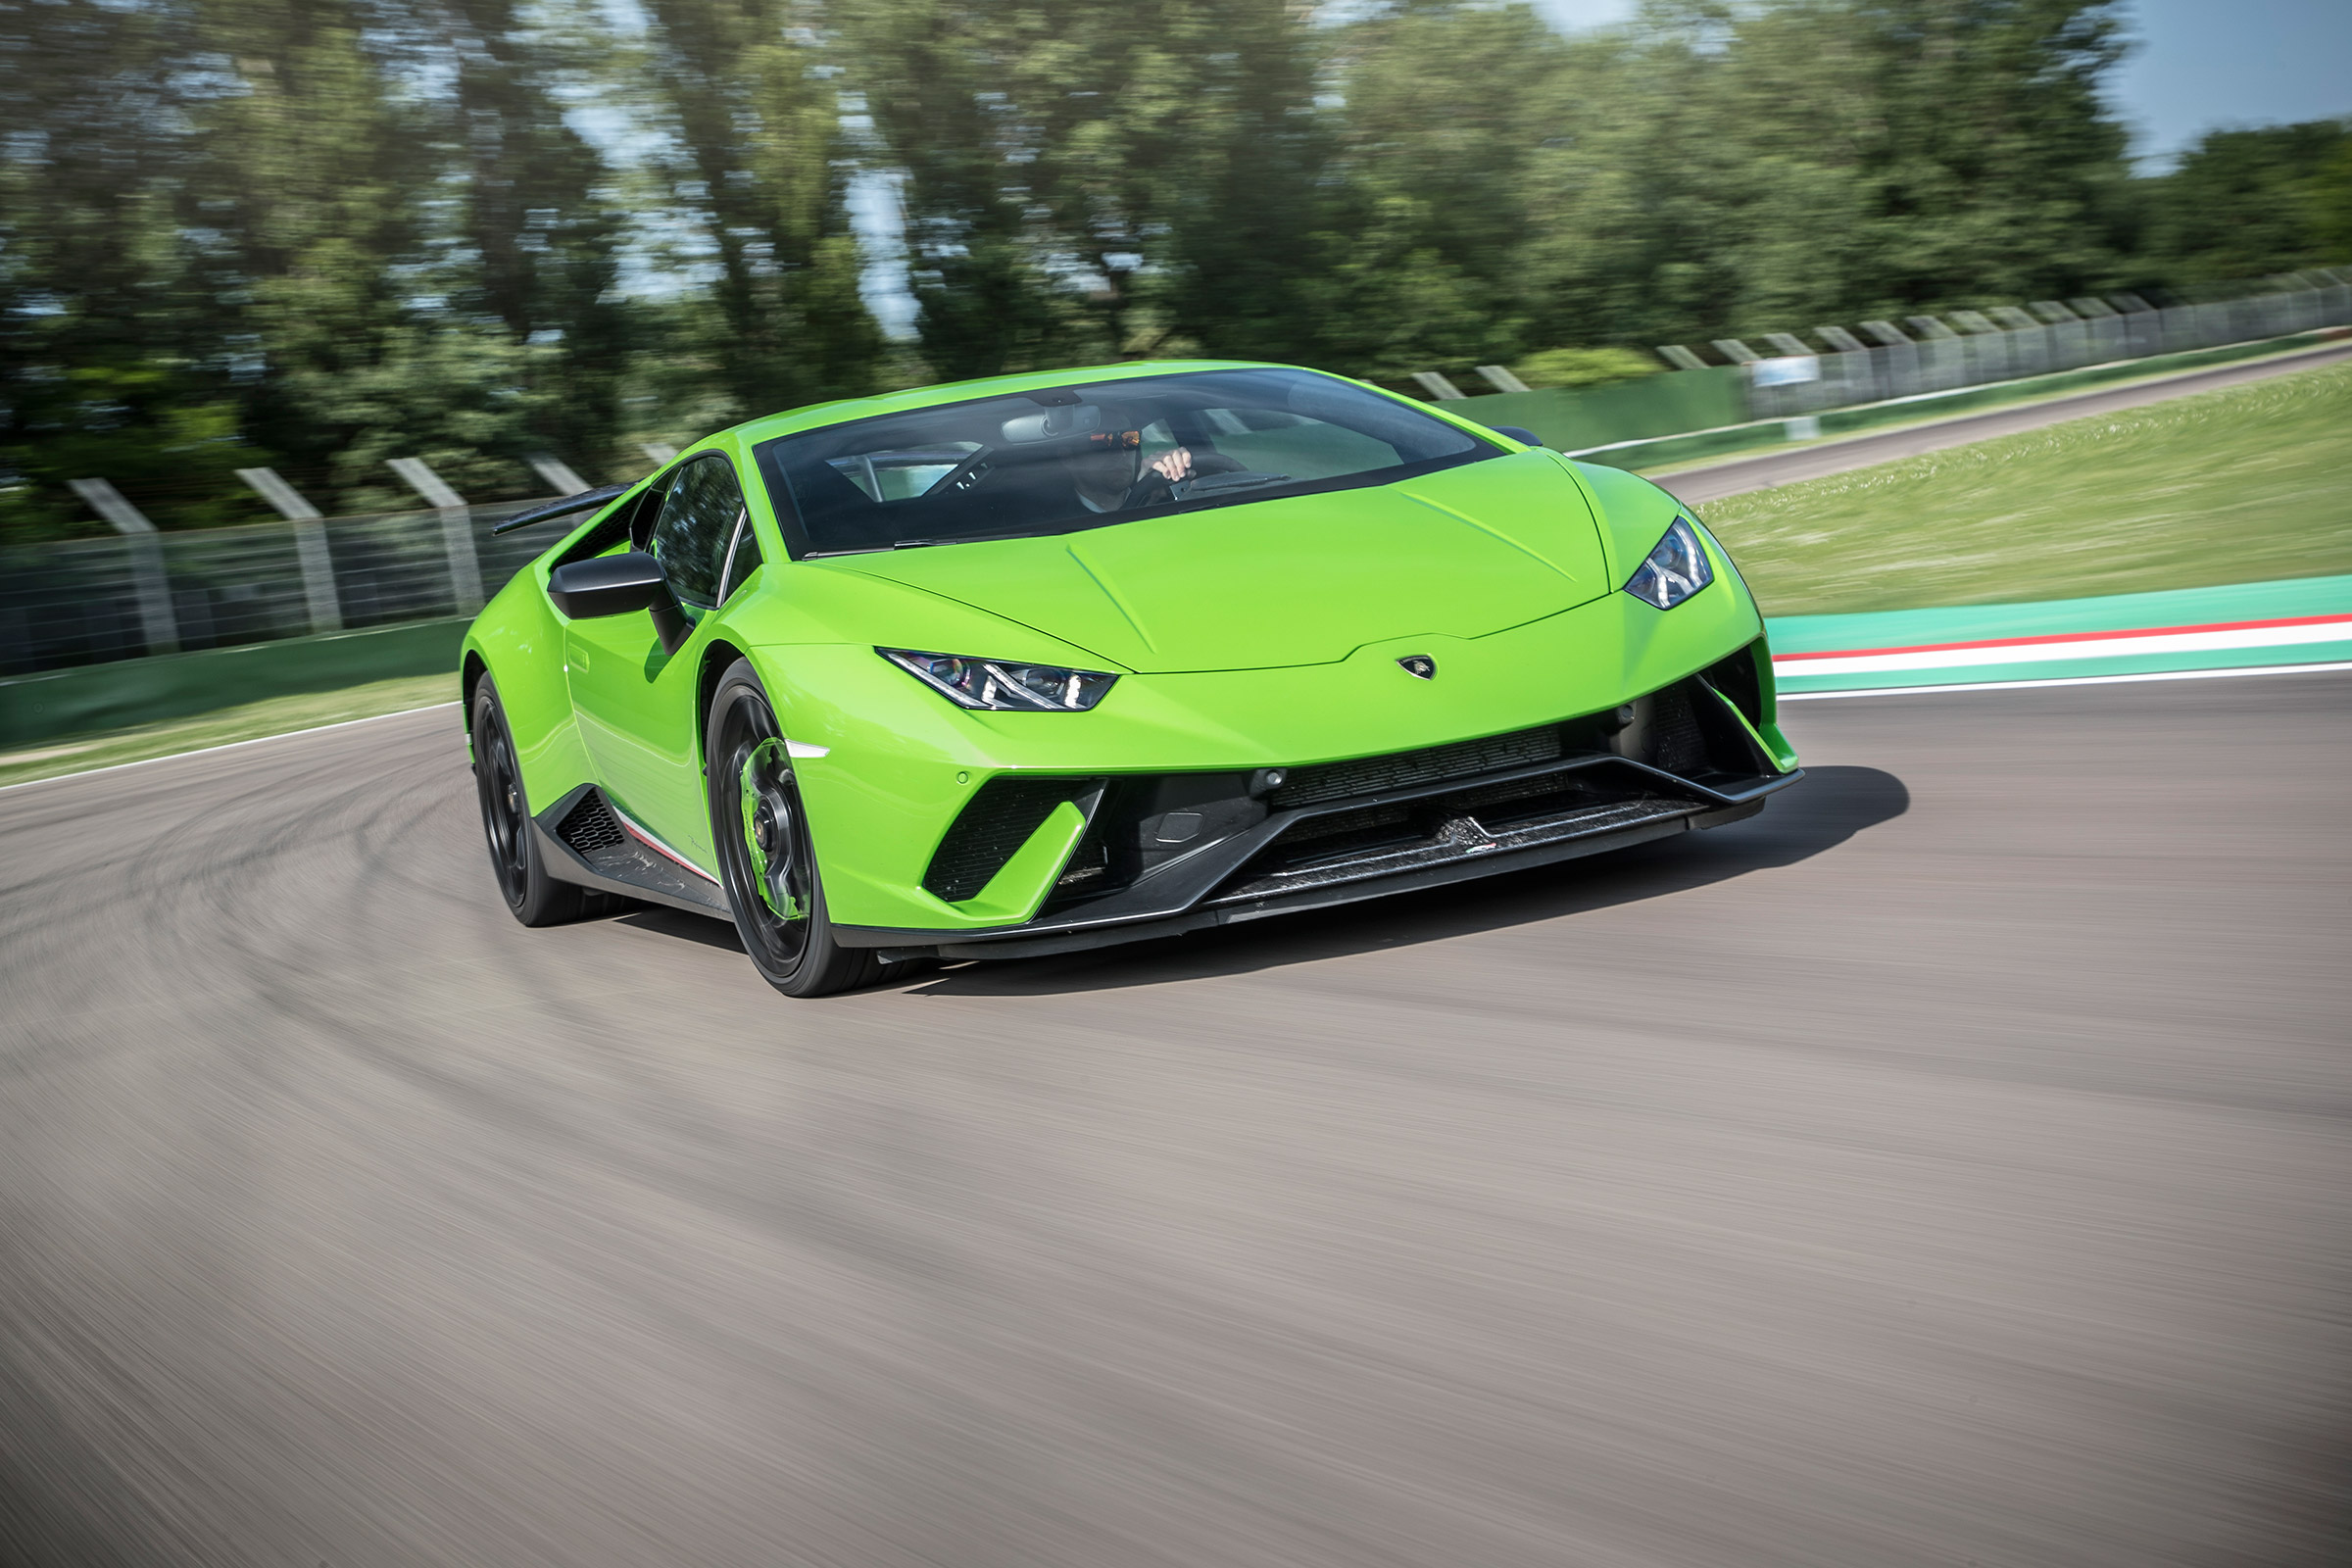 Lamborghini Huracan Performante Review Is Ring King As Impressive As The Numbers Suggest Evo